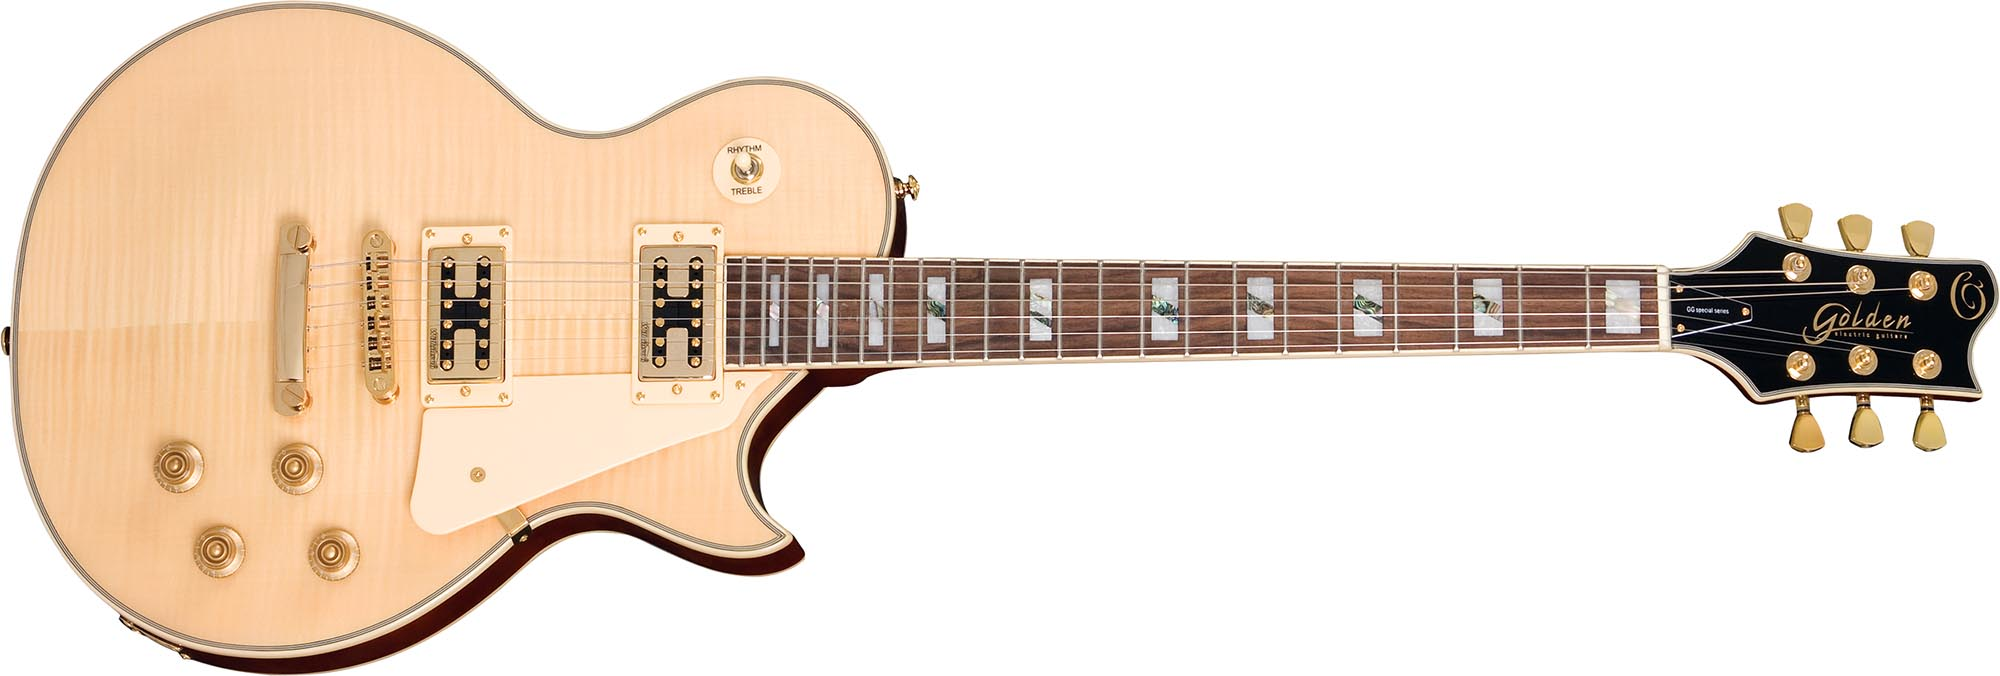 ggs500g guitarra eletrica les paul tampo maple golden ggs500g nt natural visao frontal